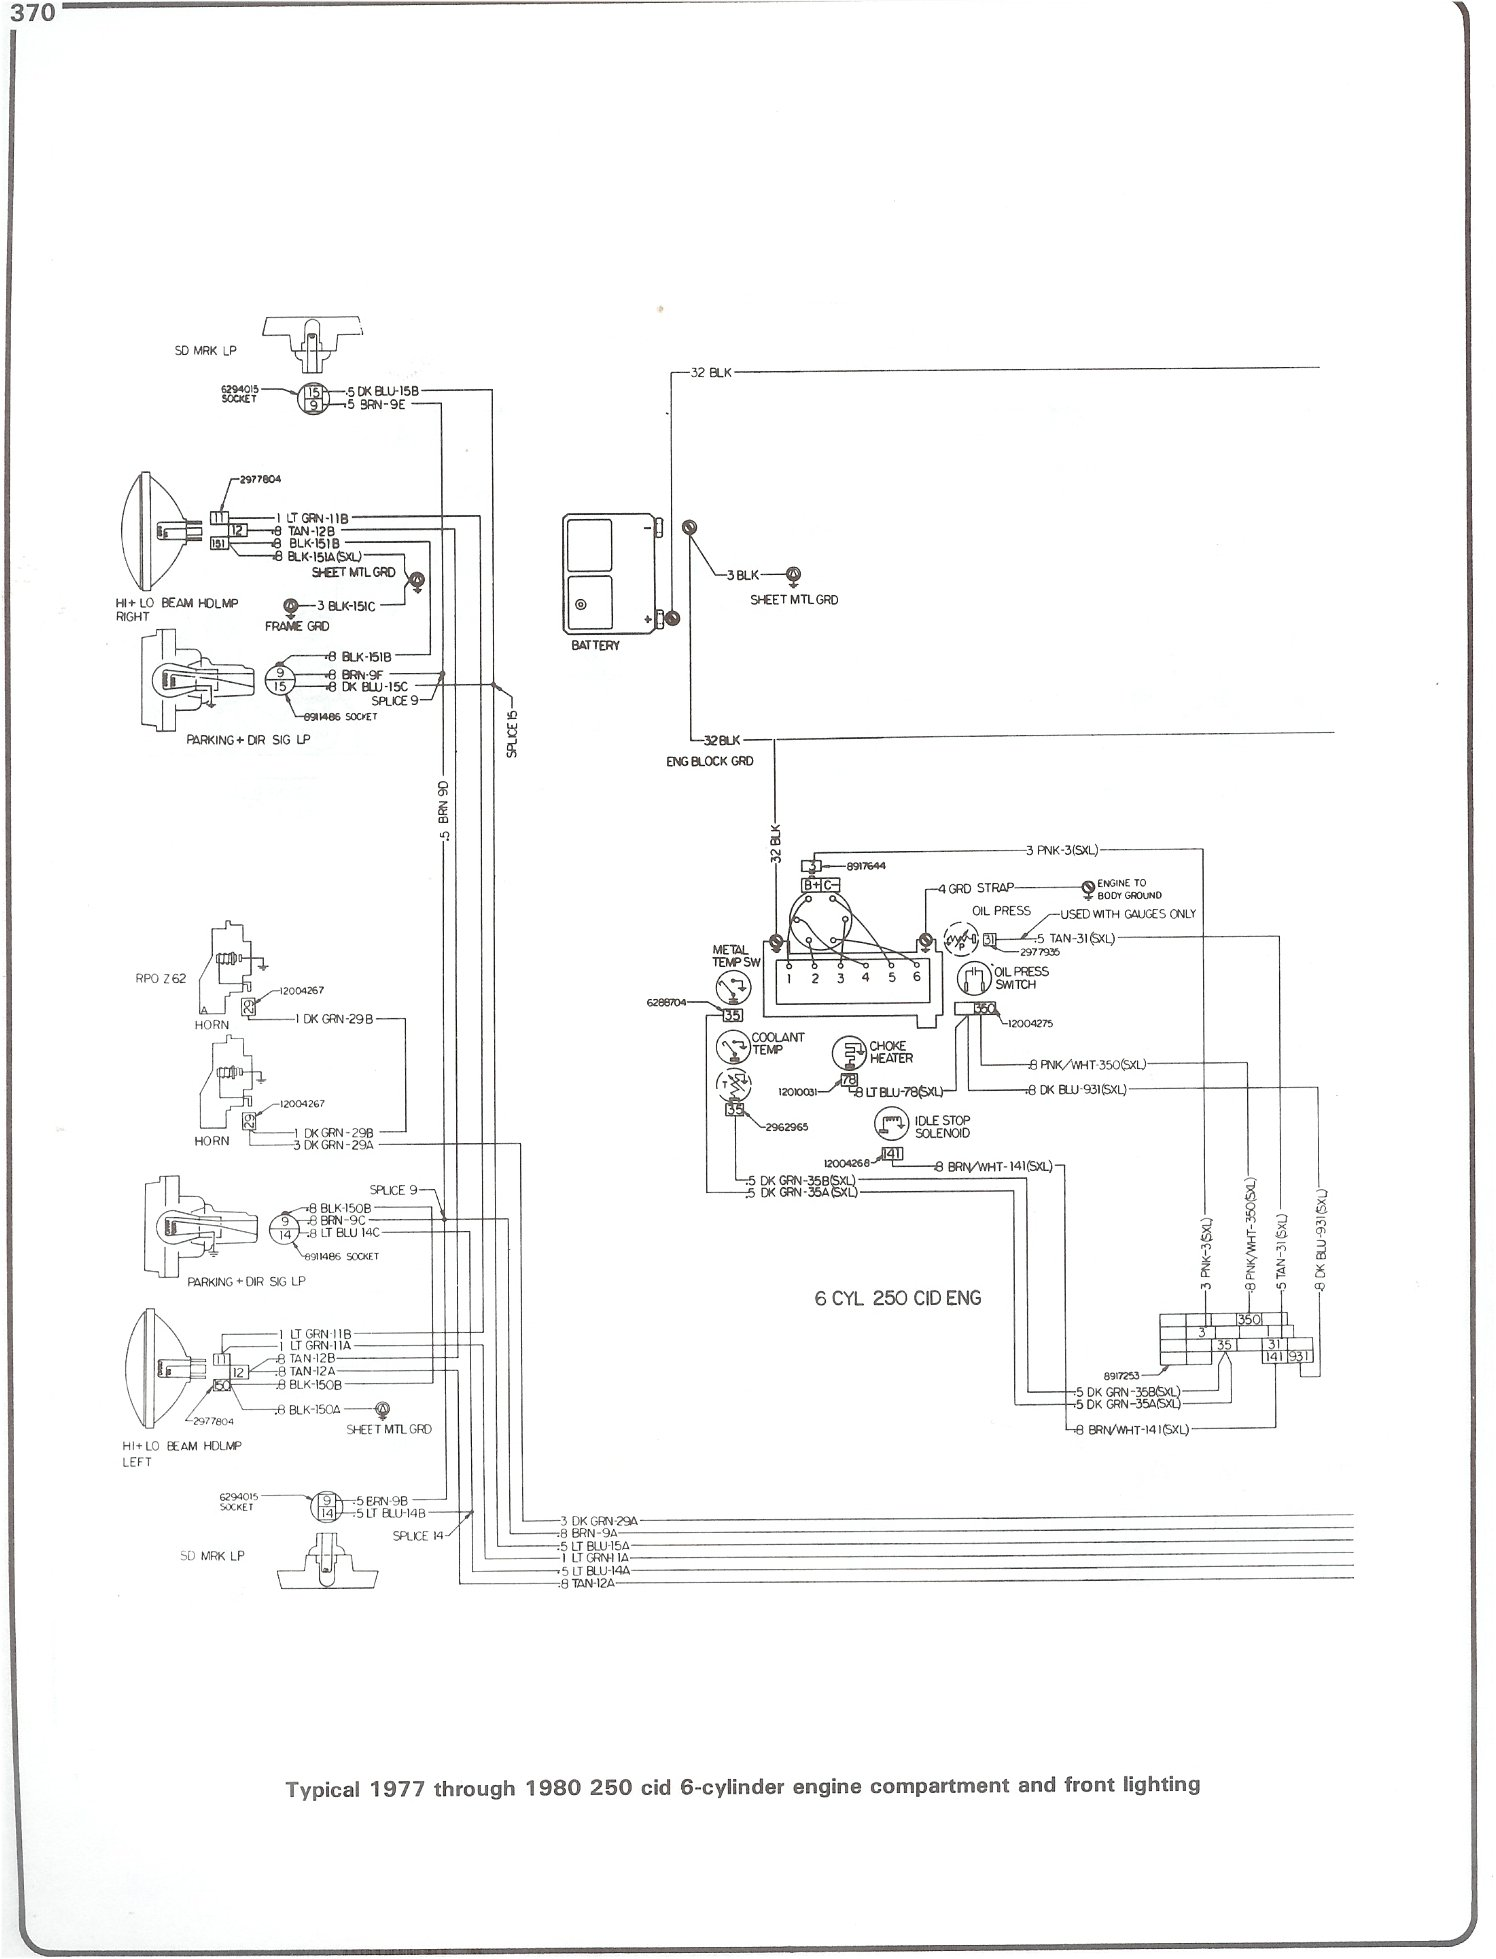 4830C 70 Chevy Truck Wiring Diagram | Wiring ResourcesWiring Resources